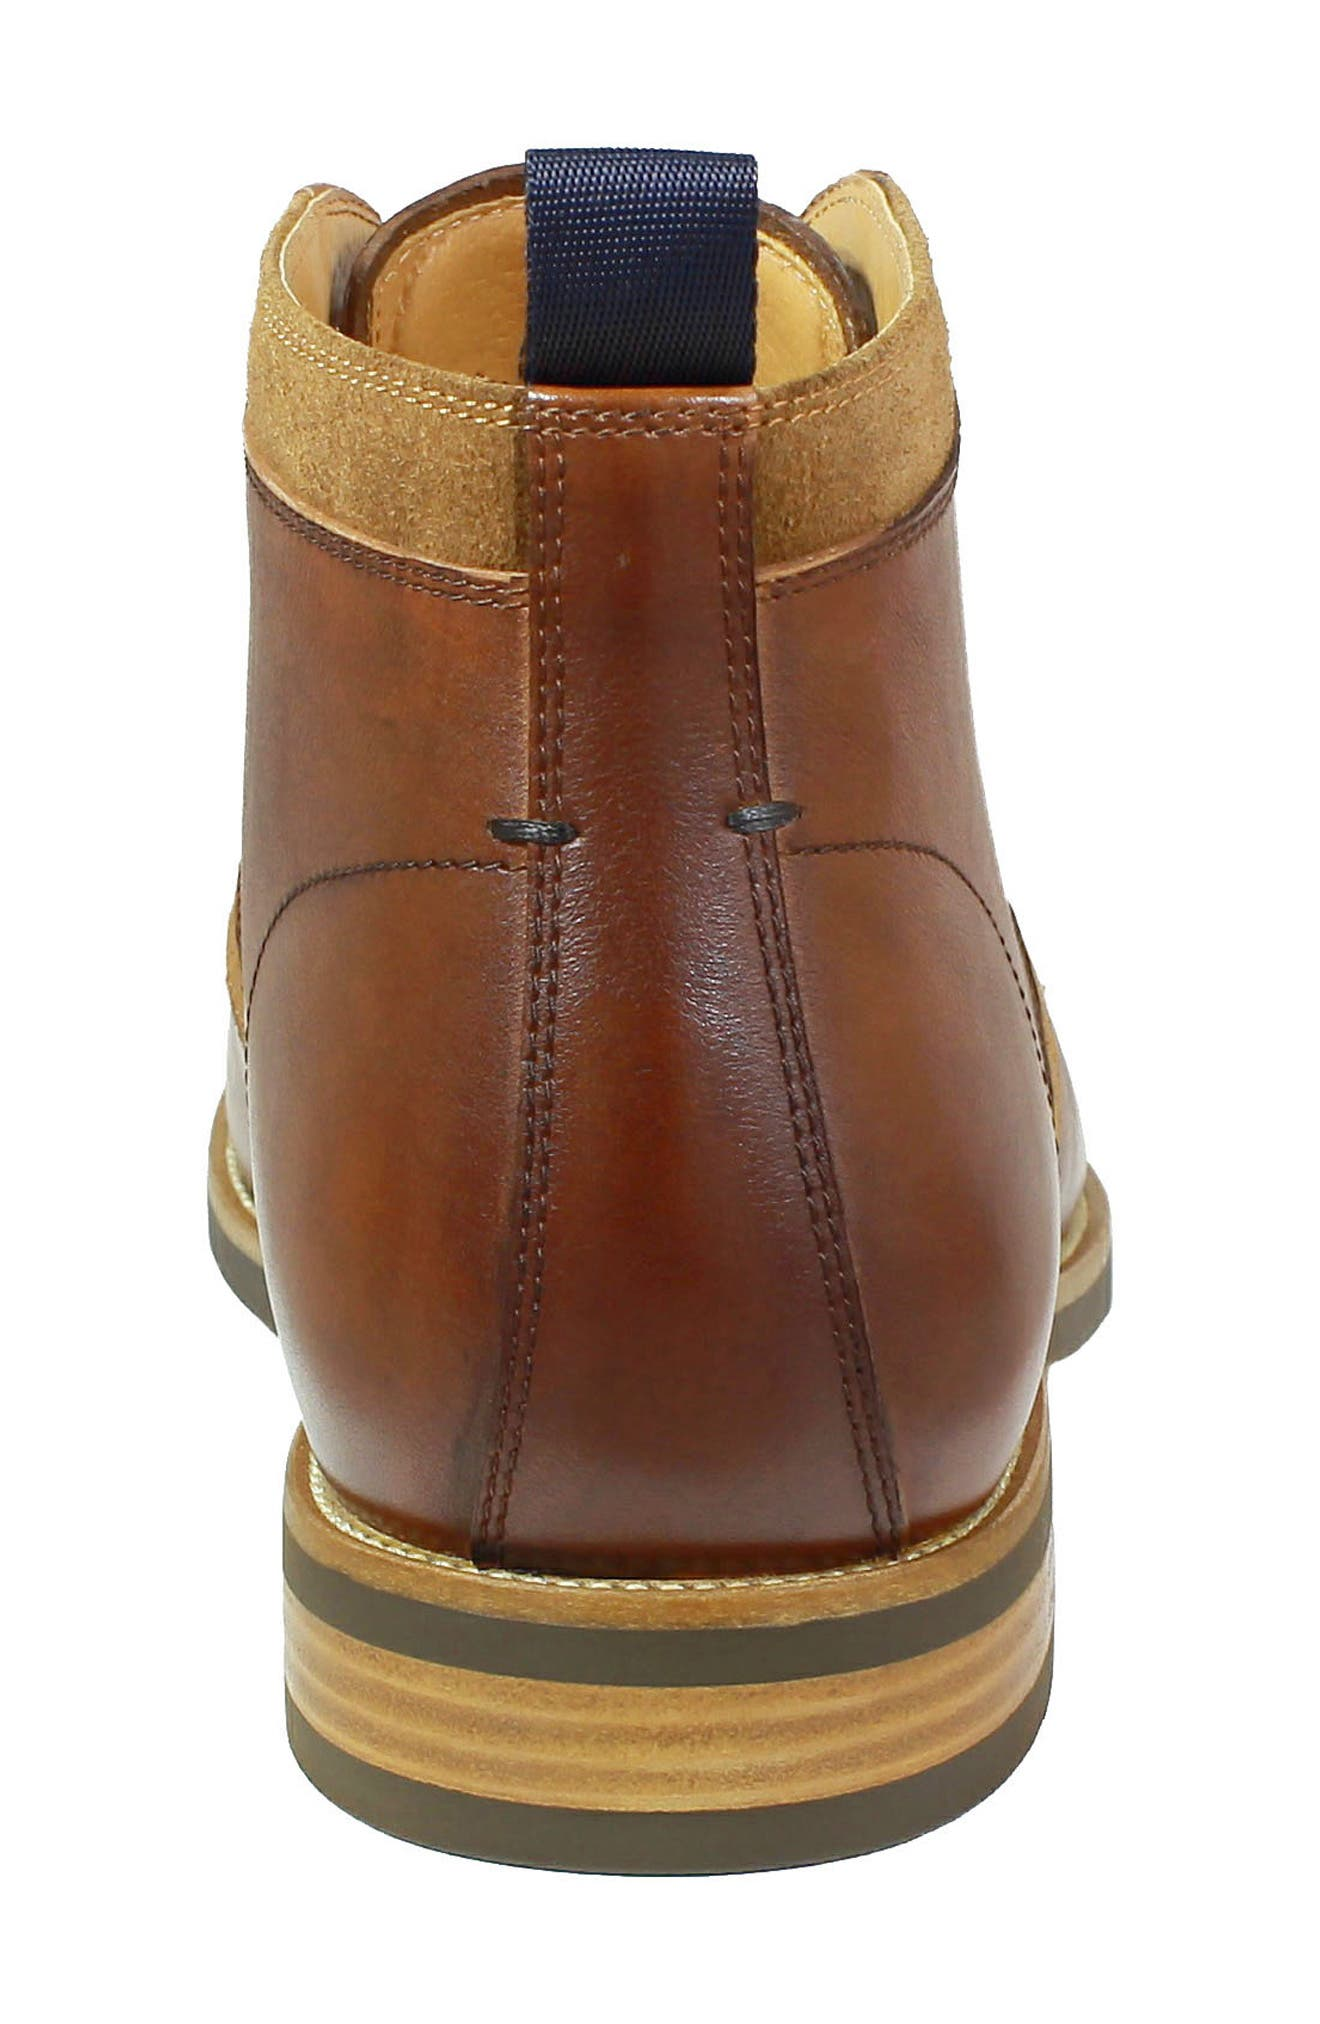 FLORSHEIM, Uptown Chukka Boot, Alternate thumbnail 7, color, COGNAC LEATHER